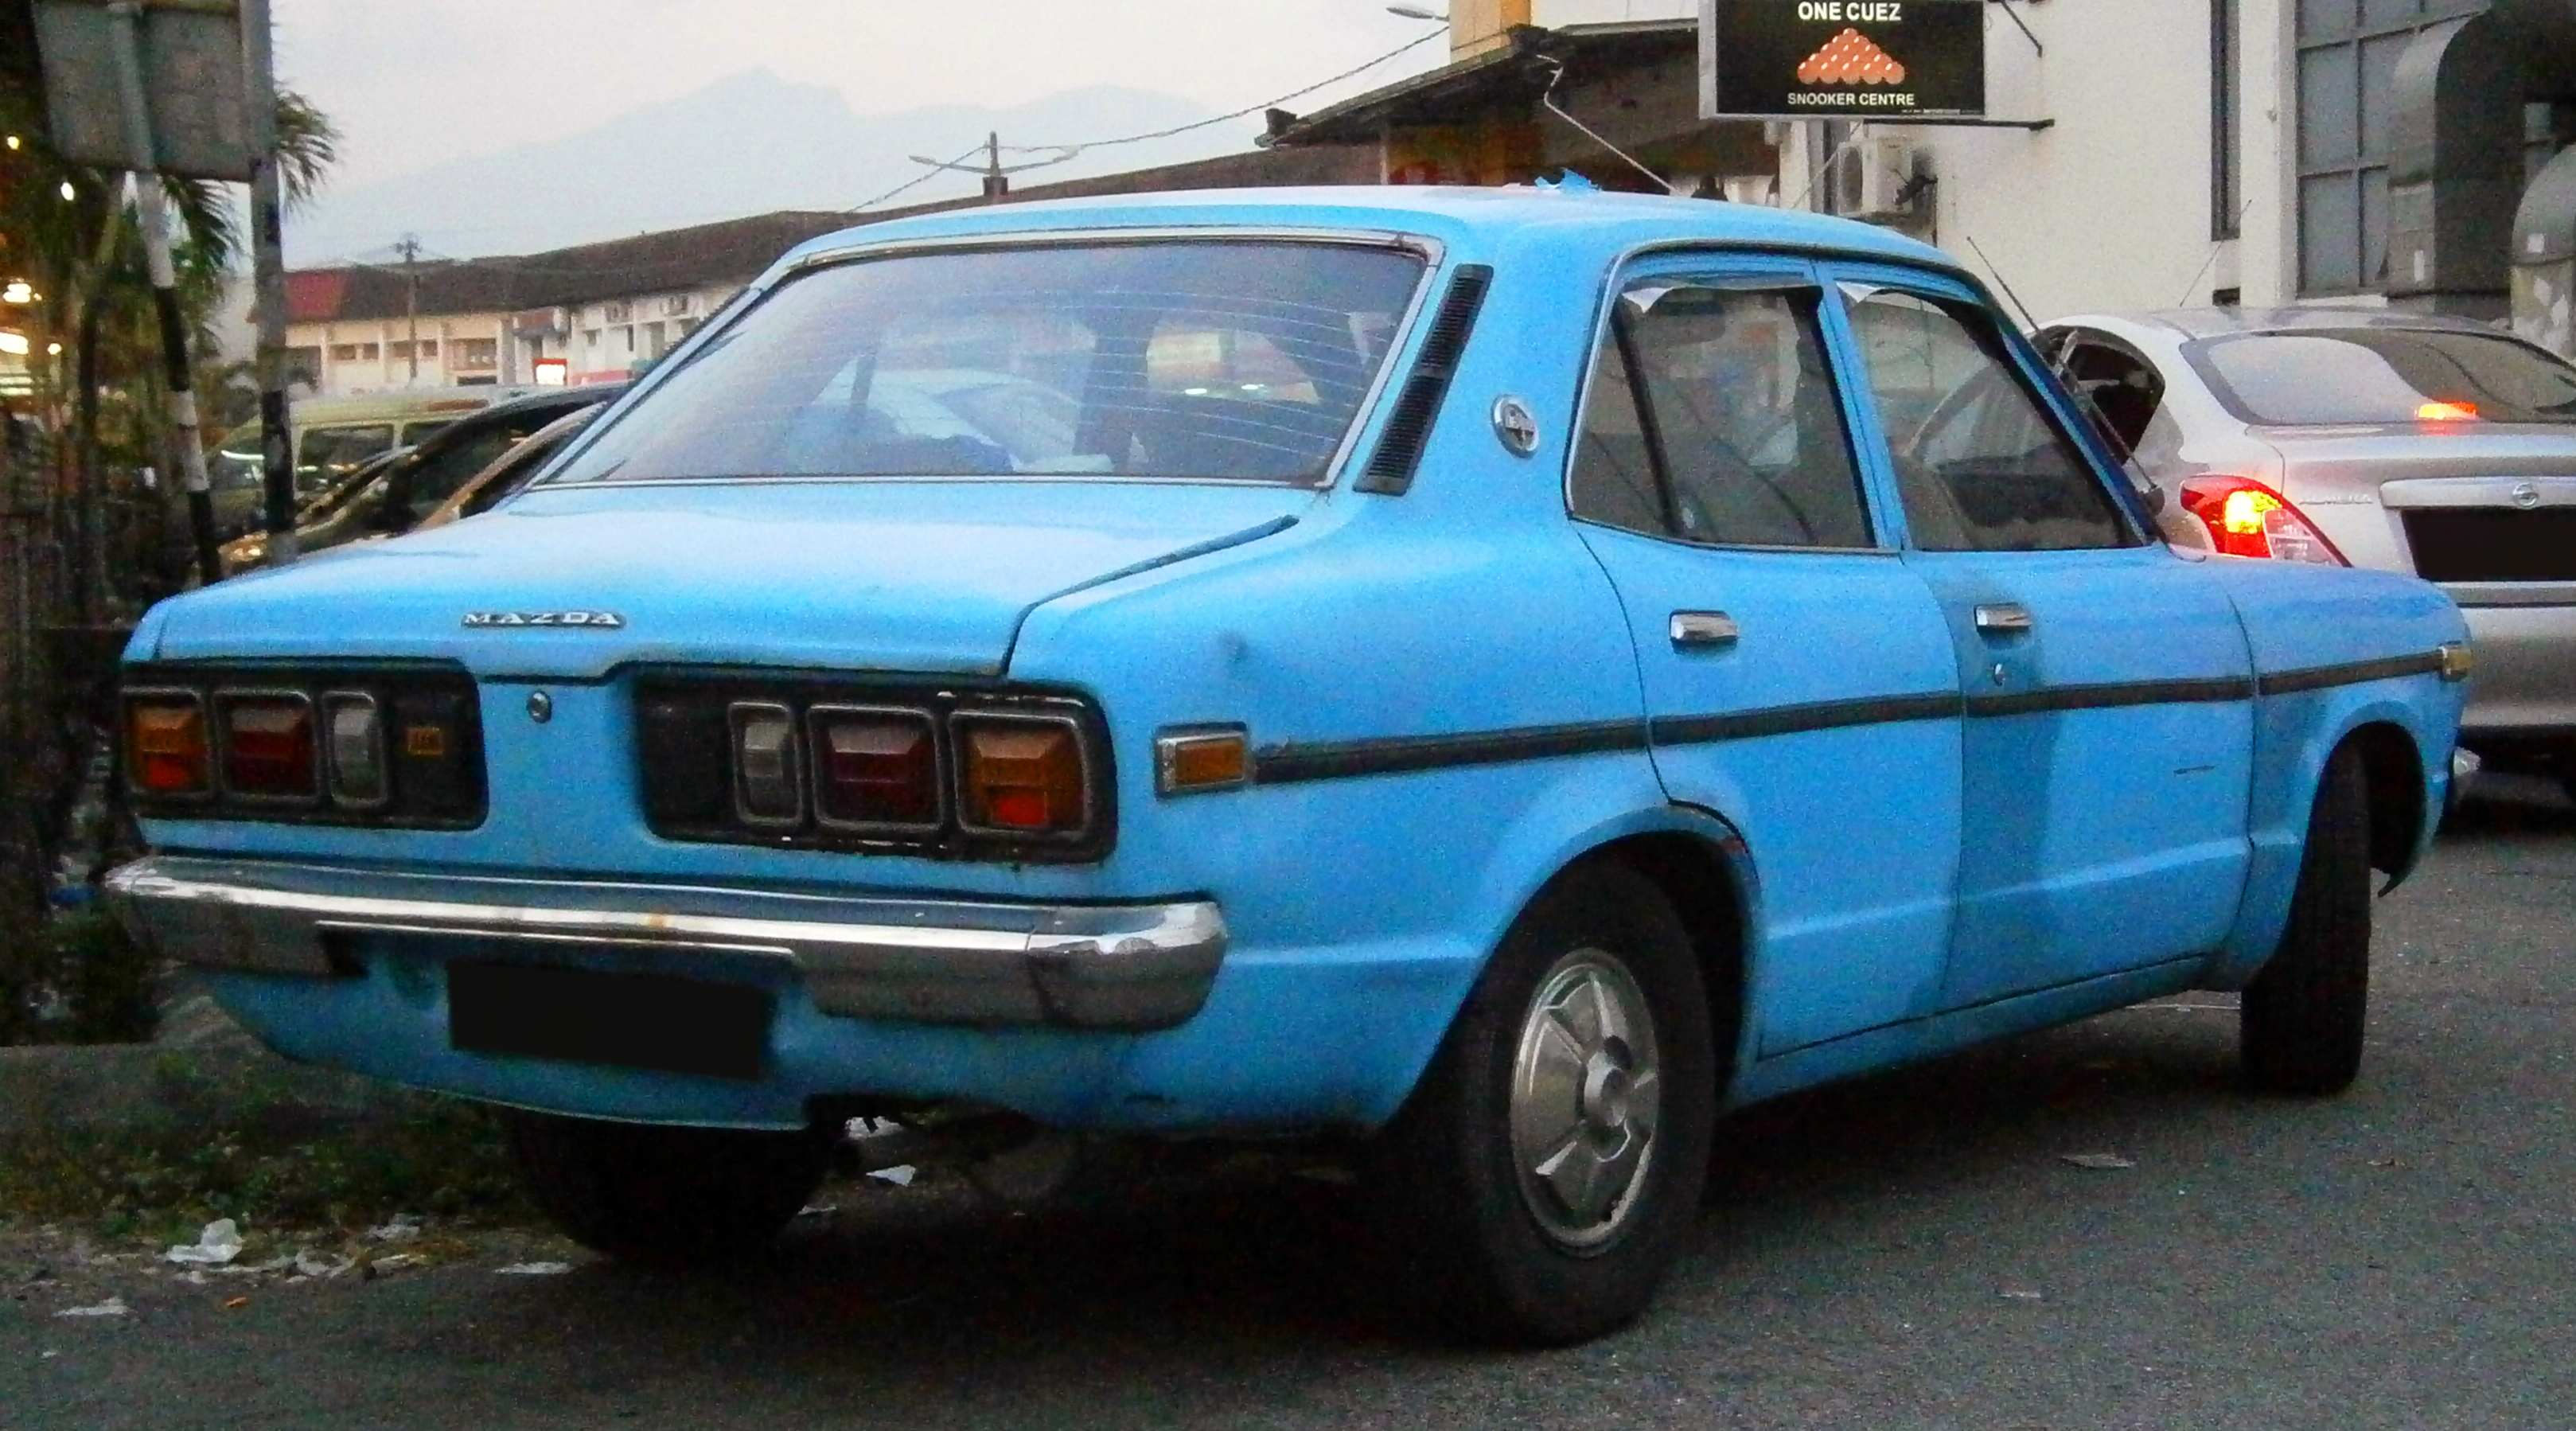 1975 Mazda 808 Wagon: List Of Synonyms And Antonyms Of The Word: Mazda 808 1971